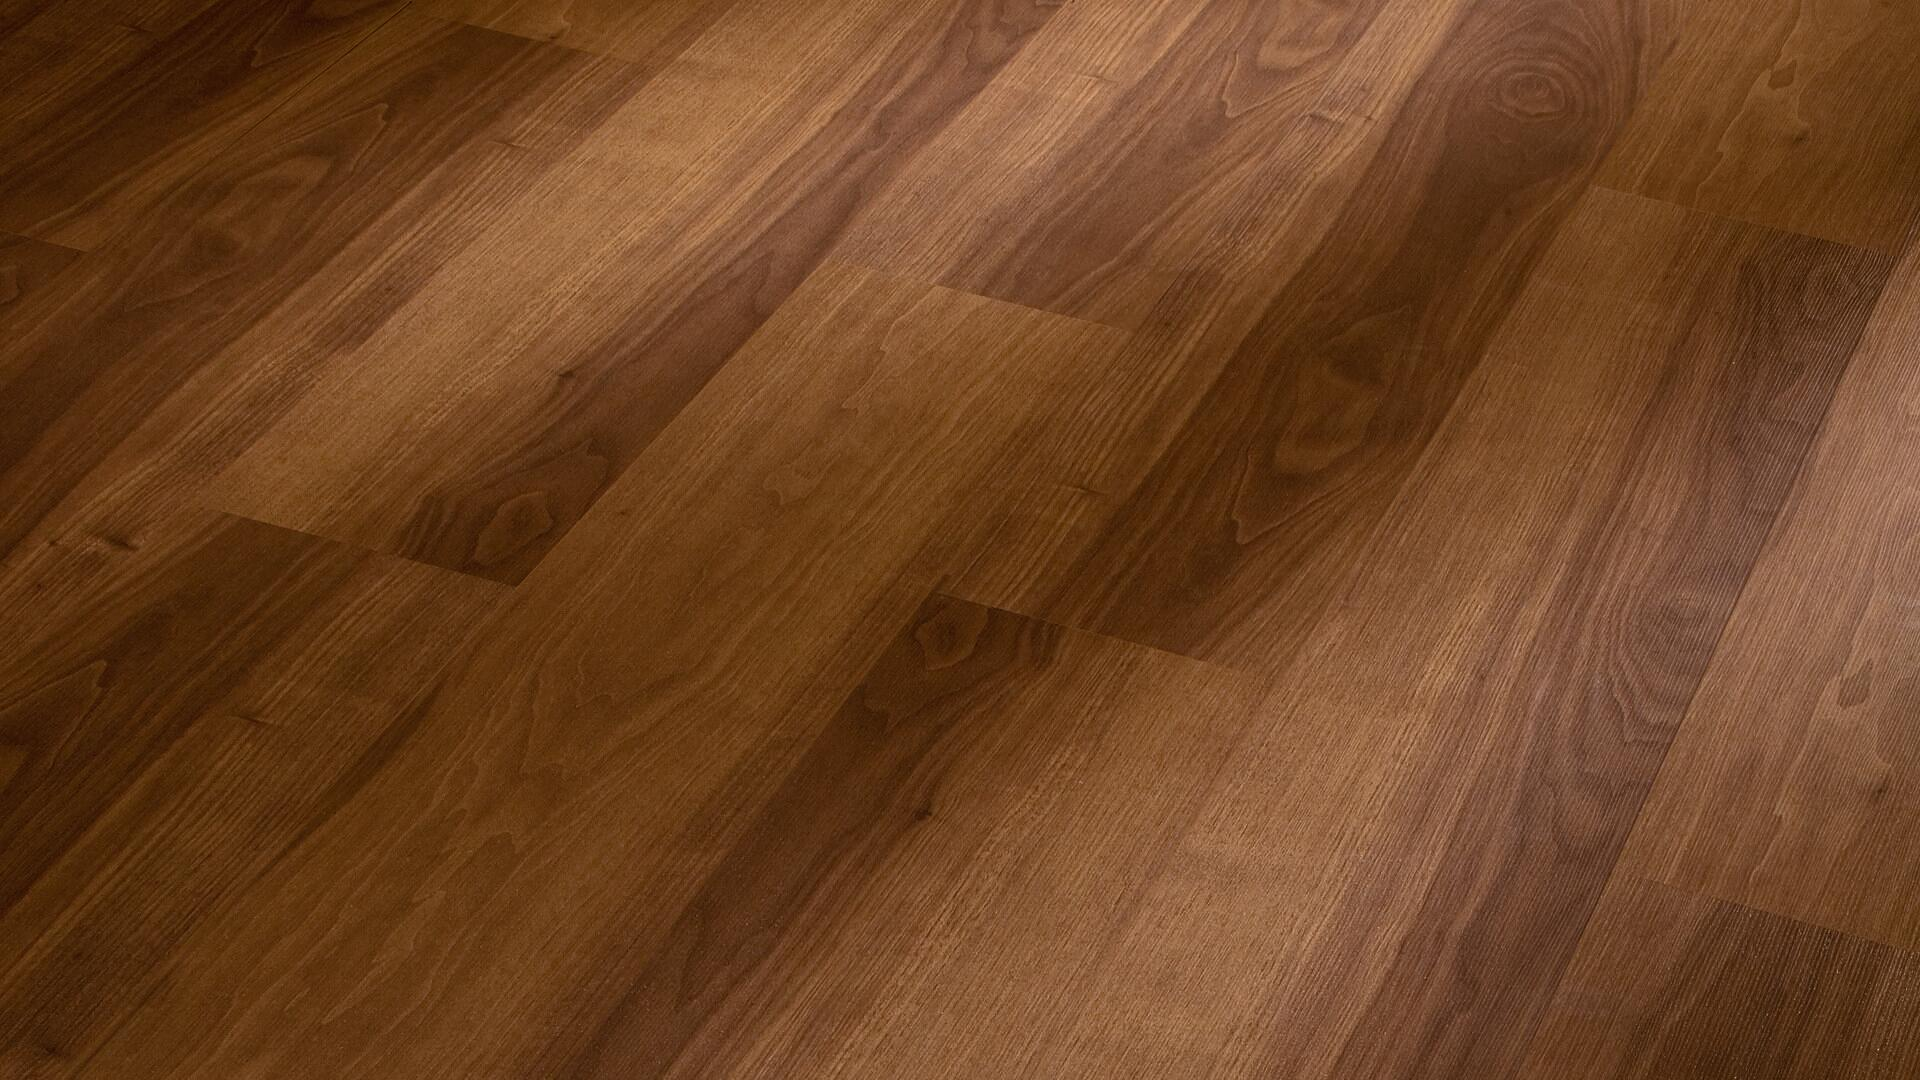 Laminate flooring MeisterDesign. laminate LC 150 Walnut 6440